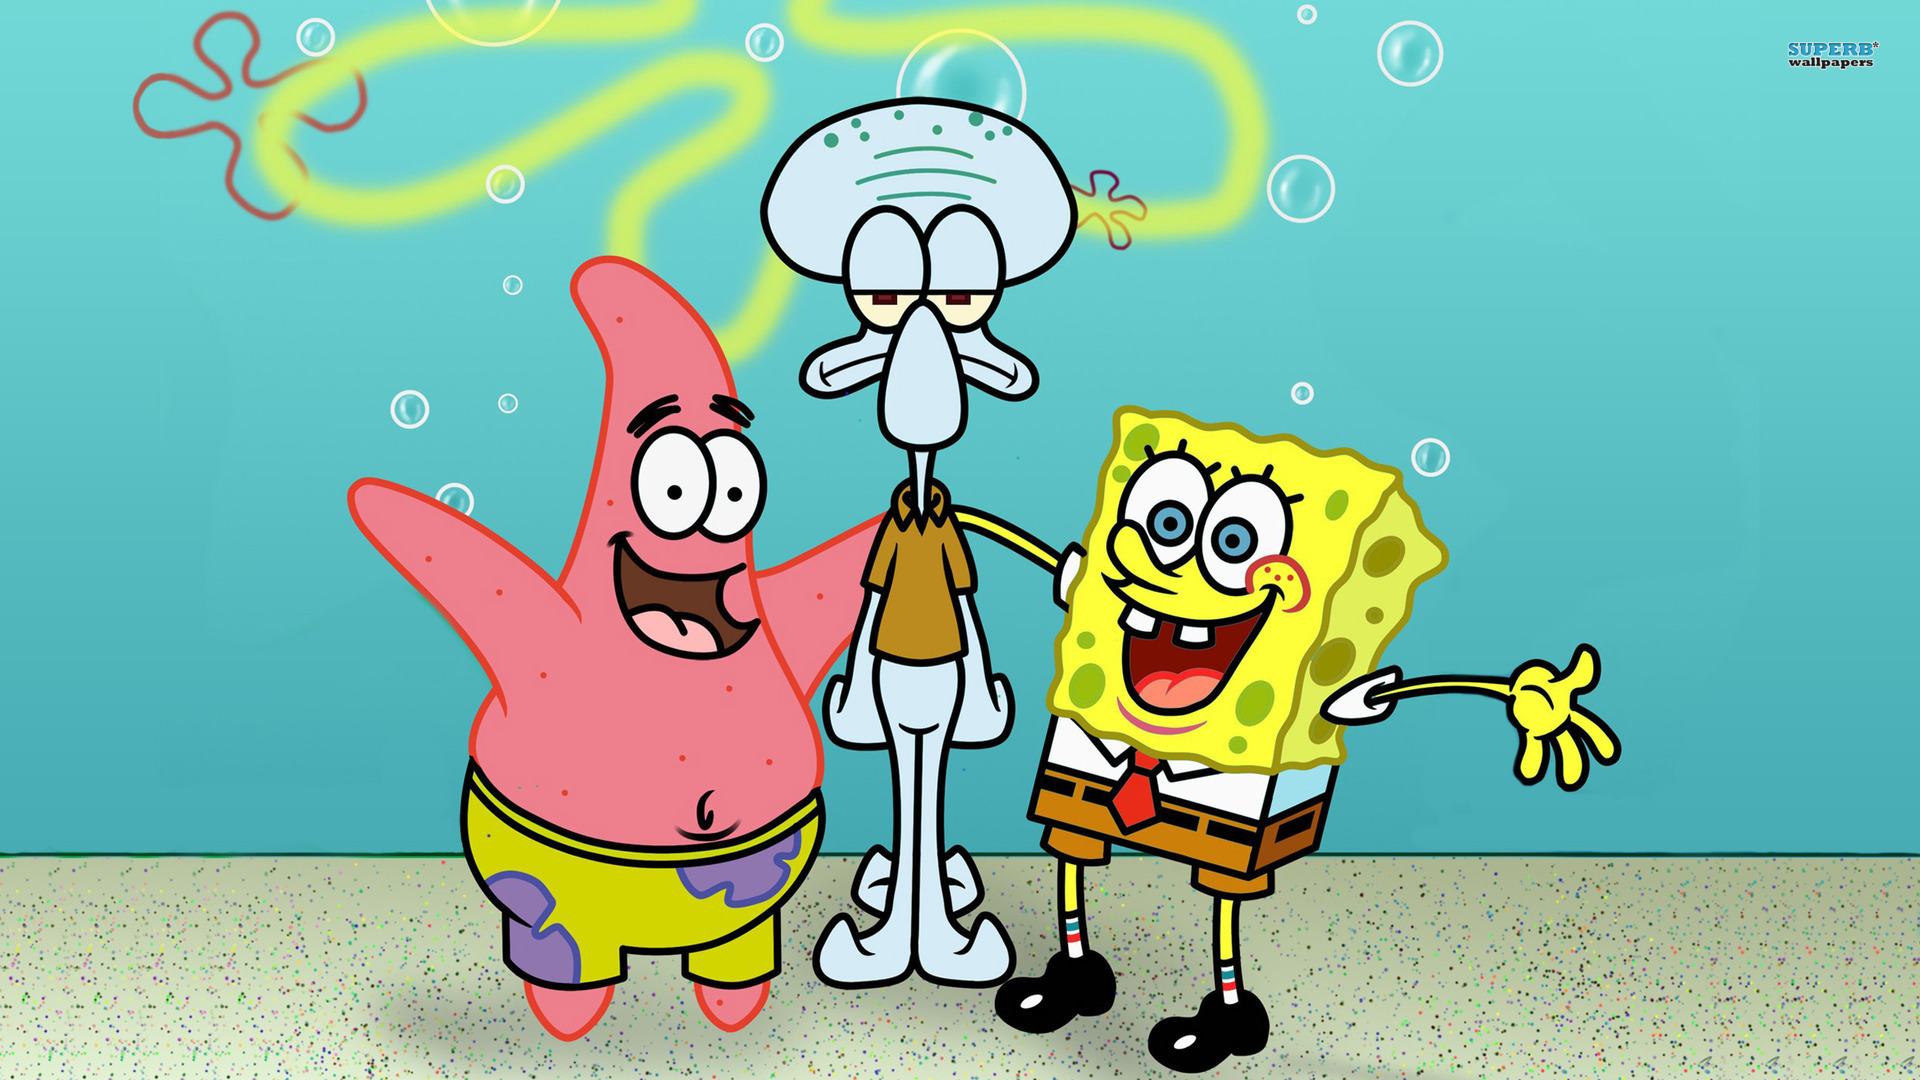 SpongeBob SquarePants wallpapers HD cyan background